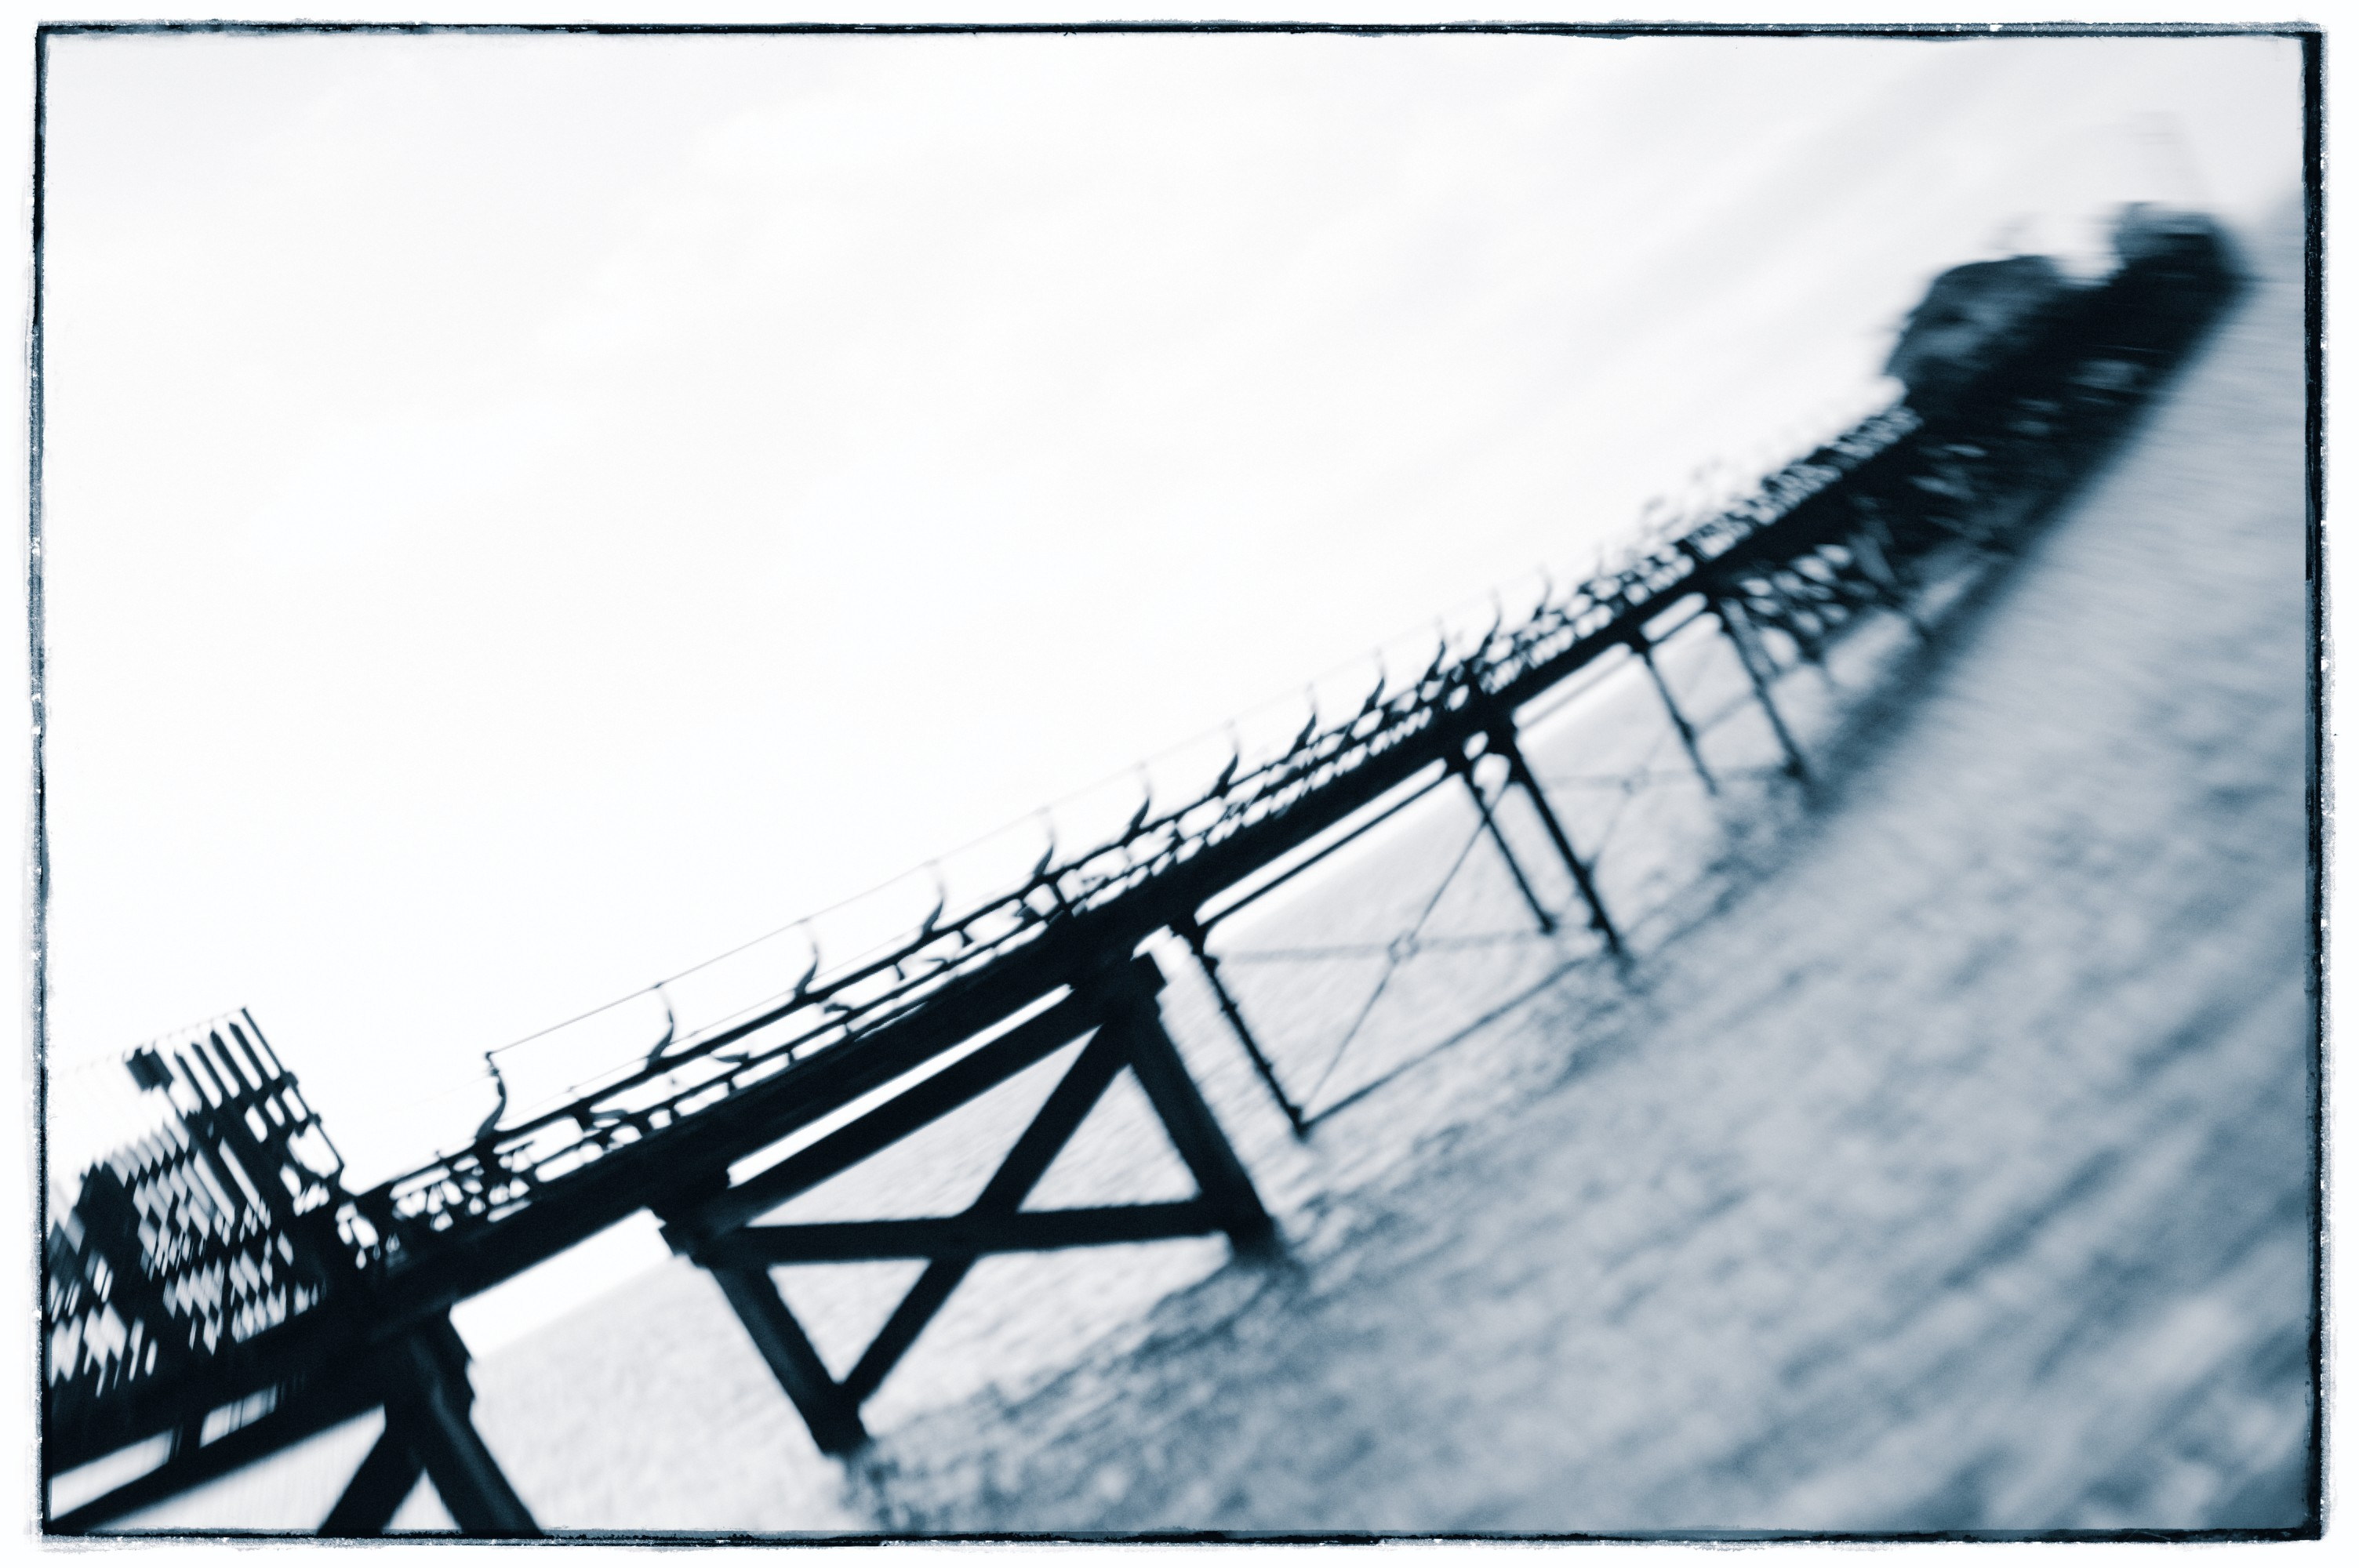 A distorted photo of a pier